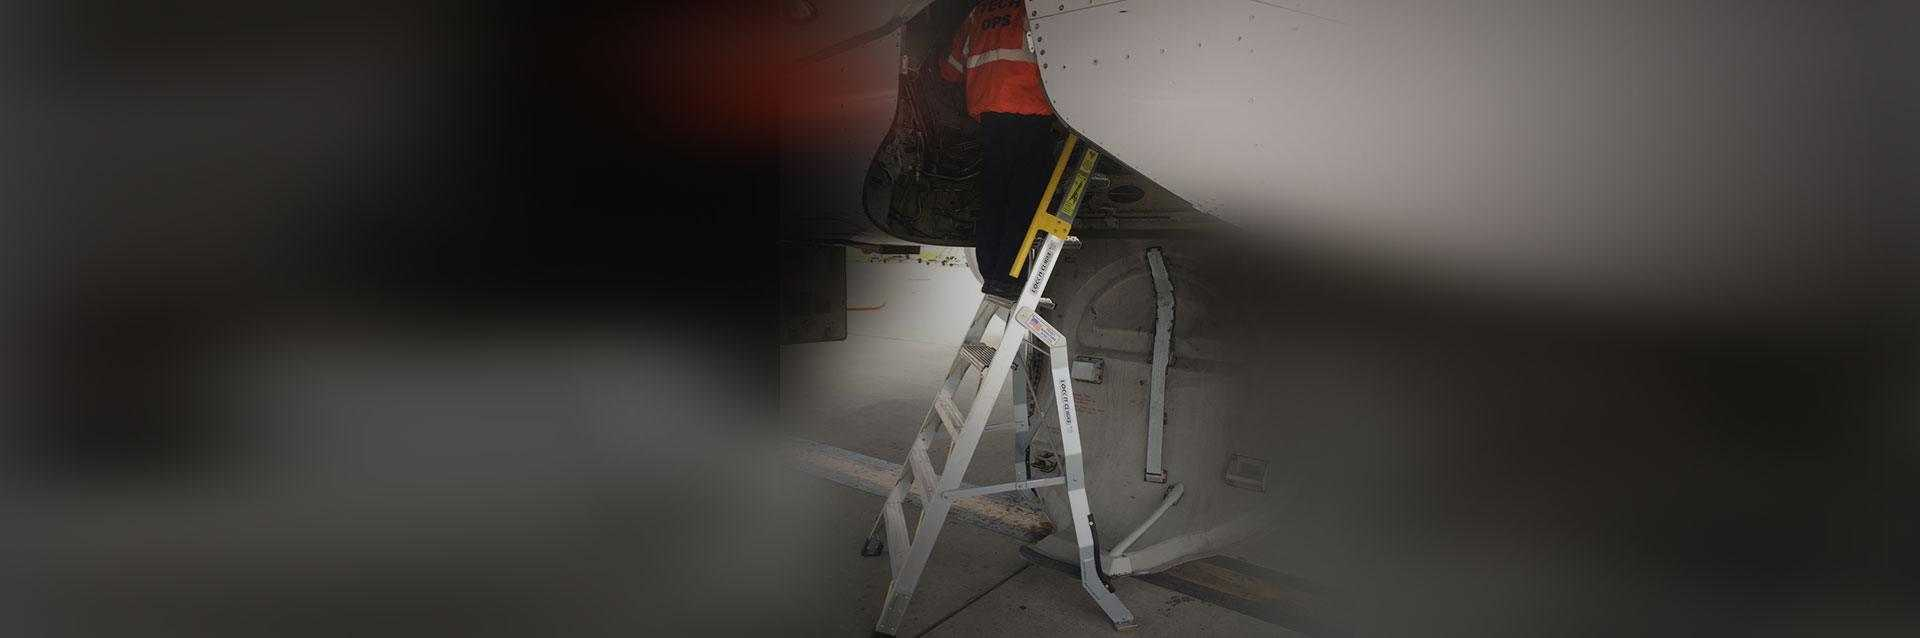 8 Foot Lnc Pylon 320 With Technician Working In Wheel Well On Airbus A320 Hero Shot